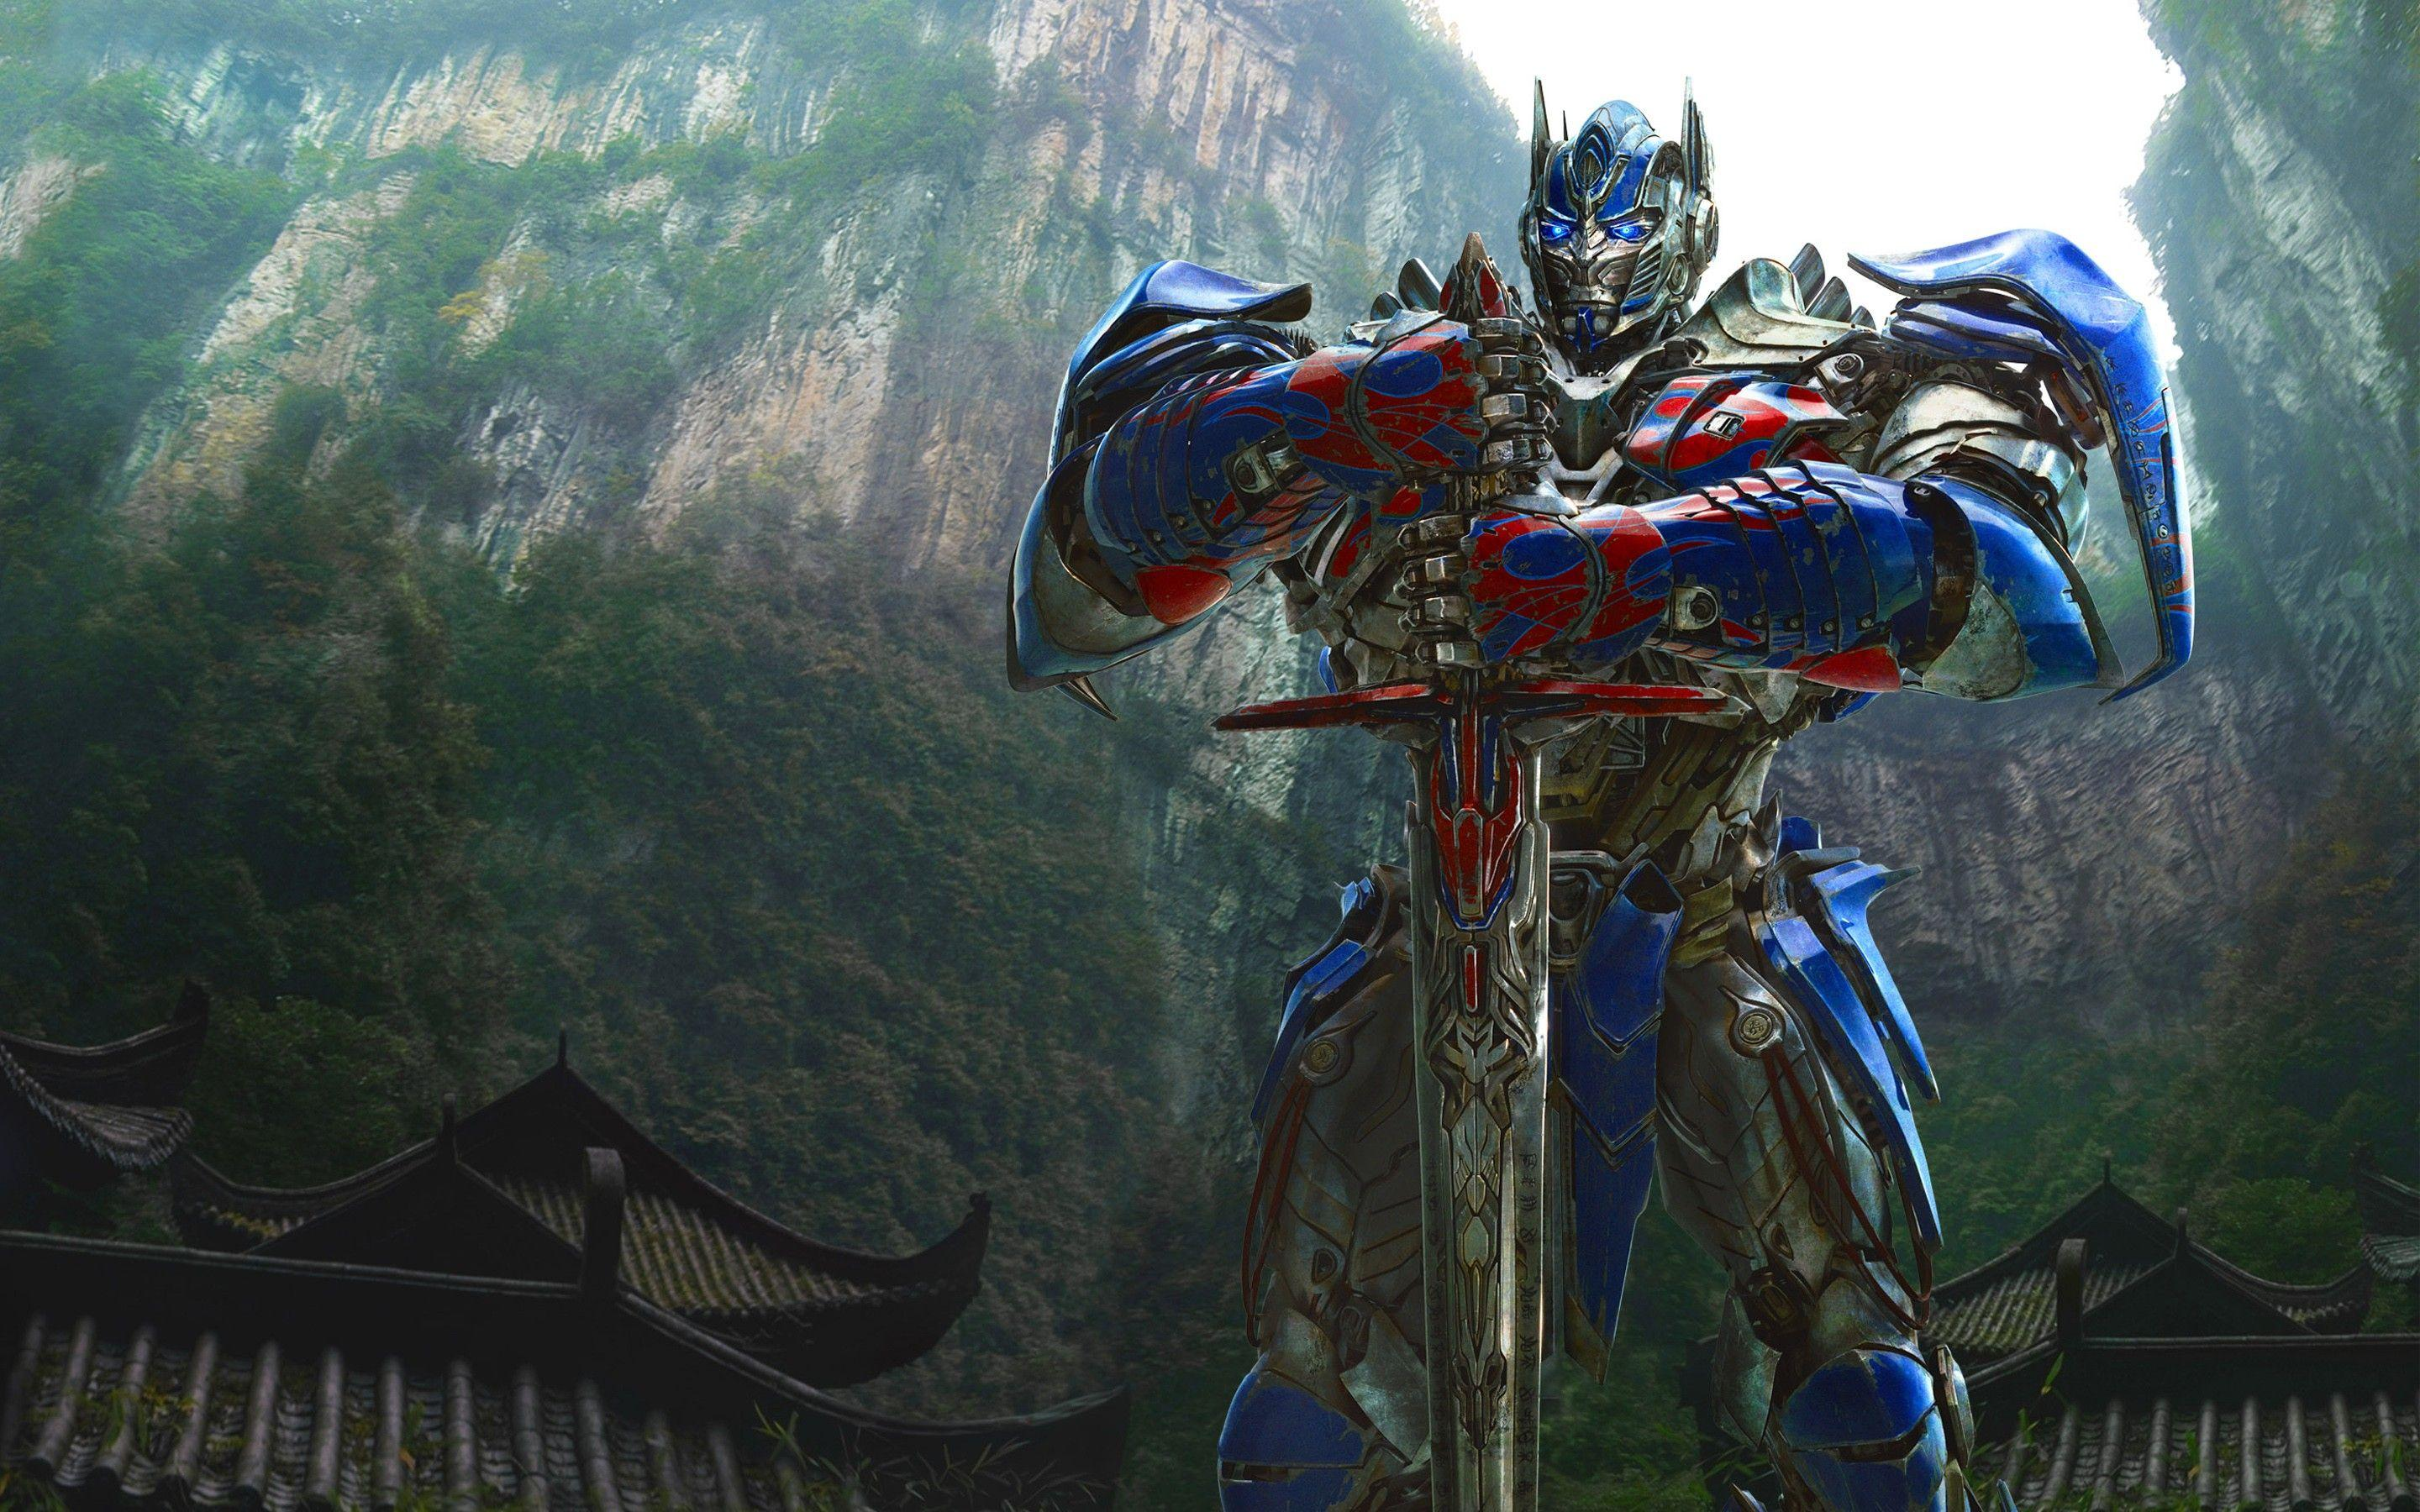 My Free Wallpapers Movies Wallpapers Transformers Barricade